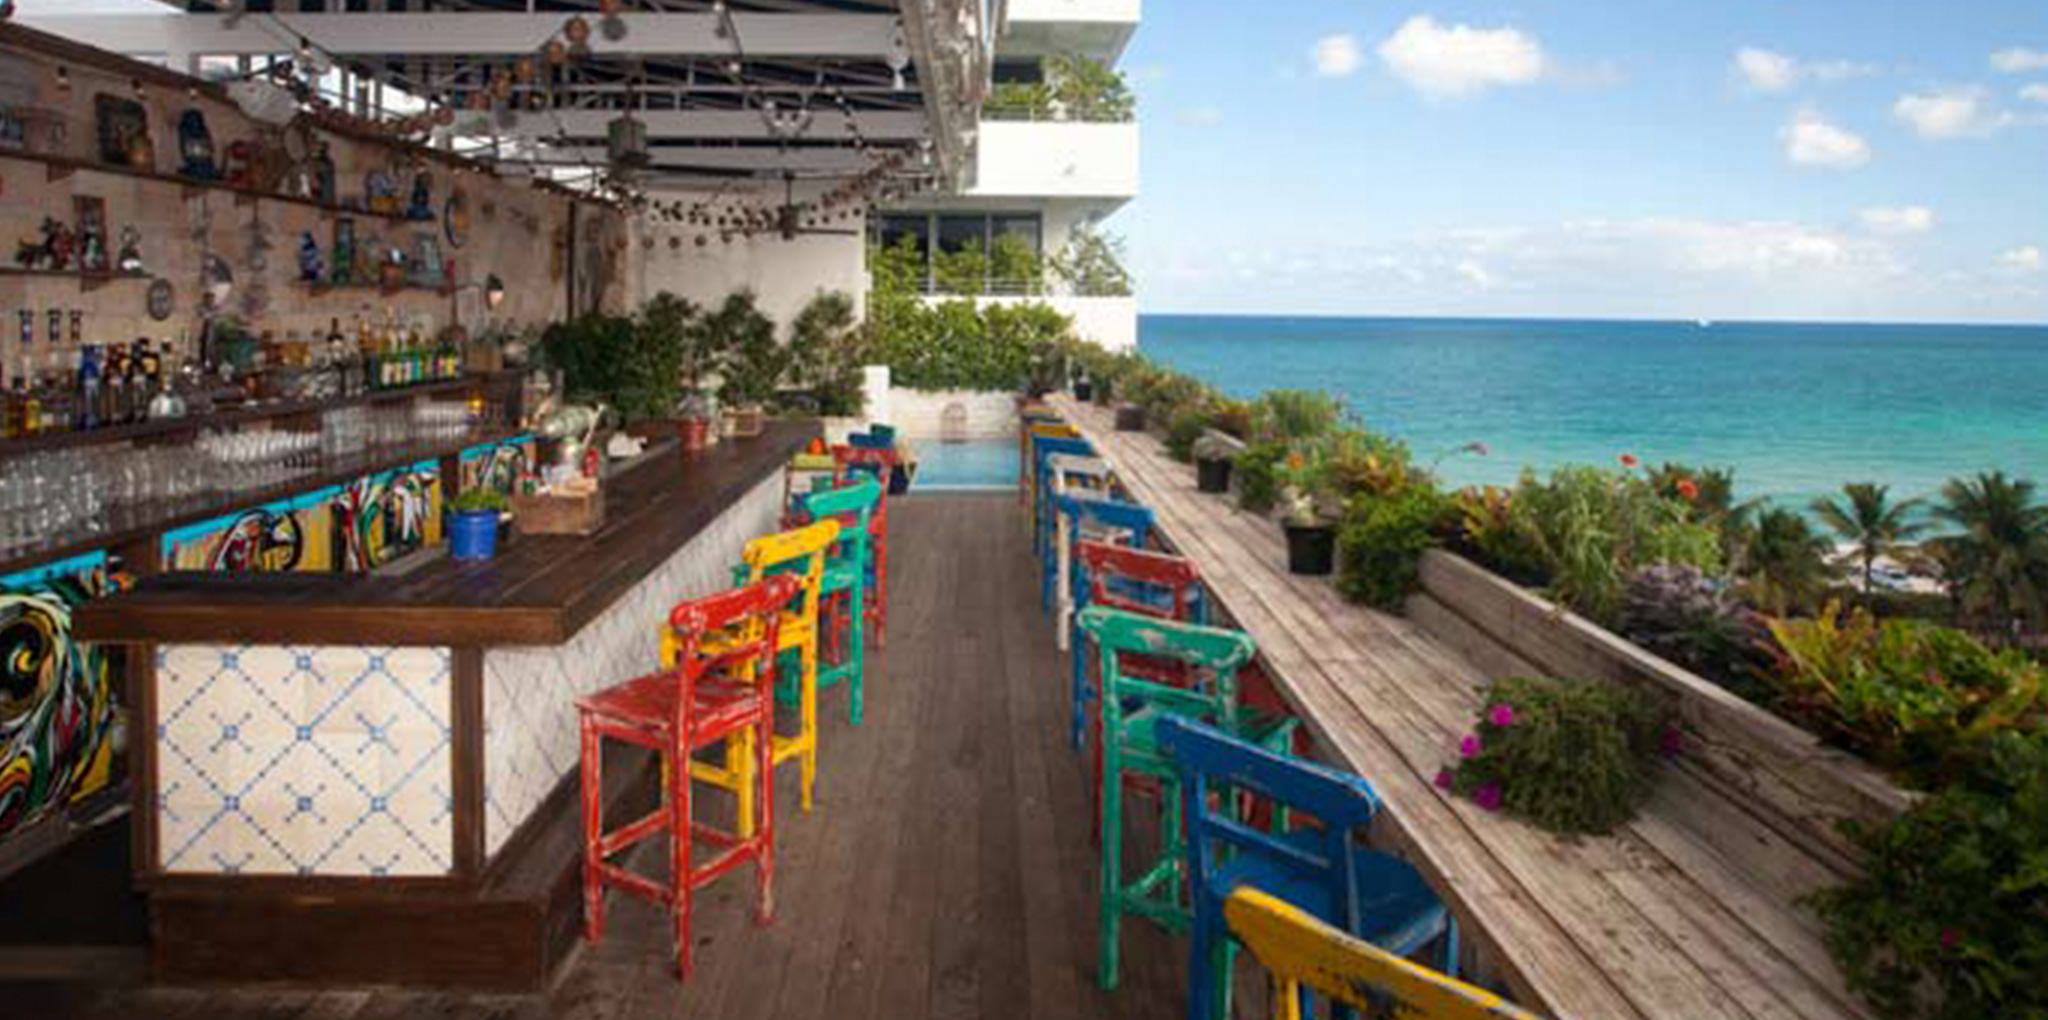 Soho Beach House Image